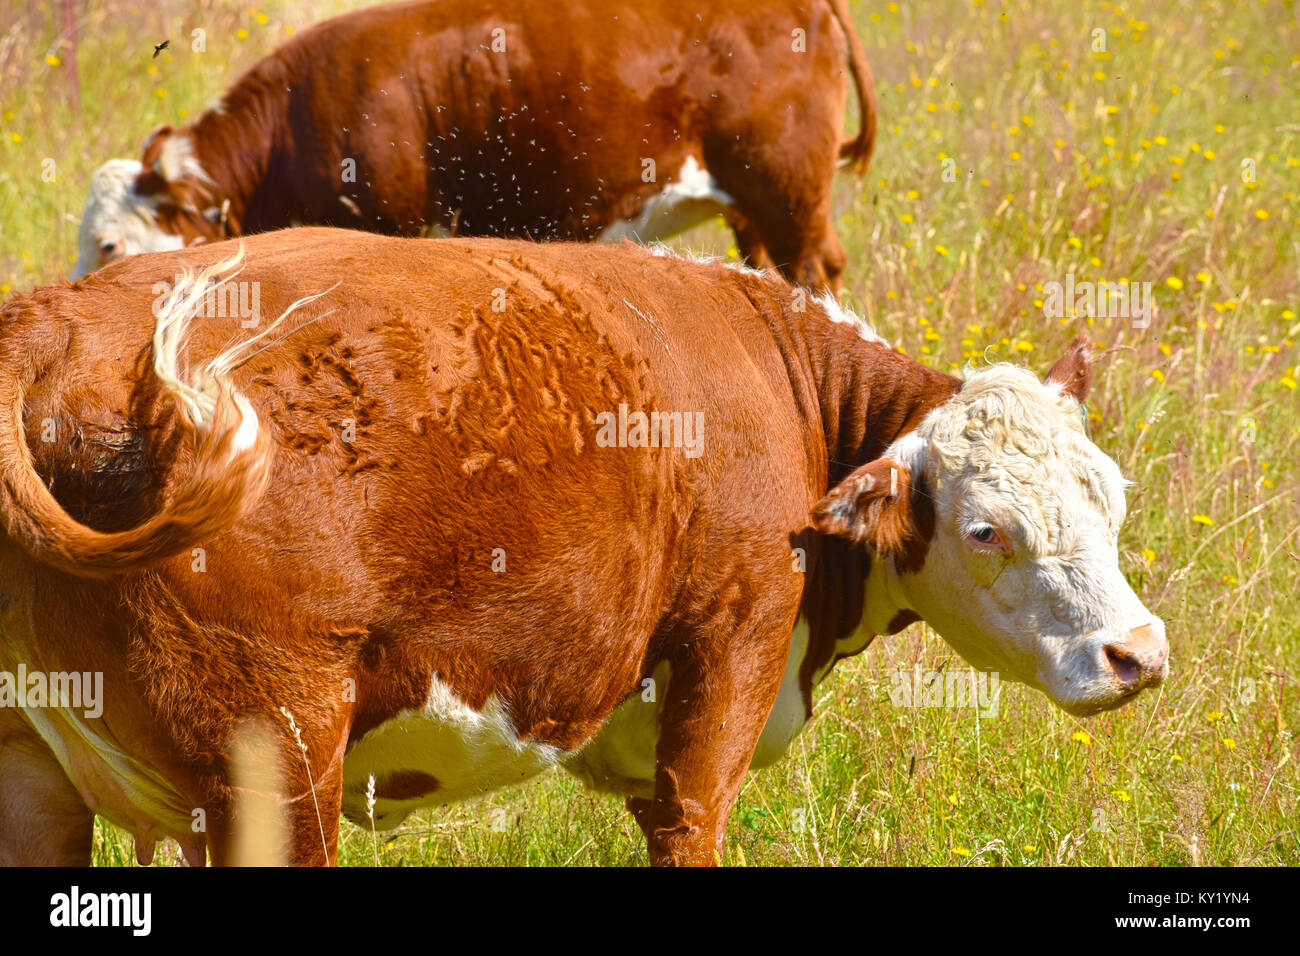 A swarm of flies all over this pregnat cow and she is not happy about it.  Some of the flies are airborne from her - Stock Image